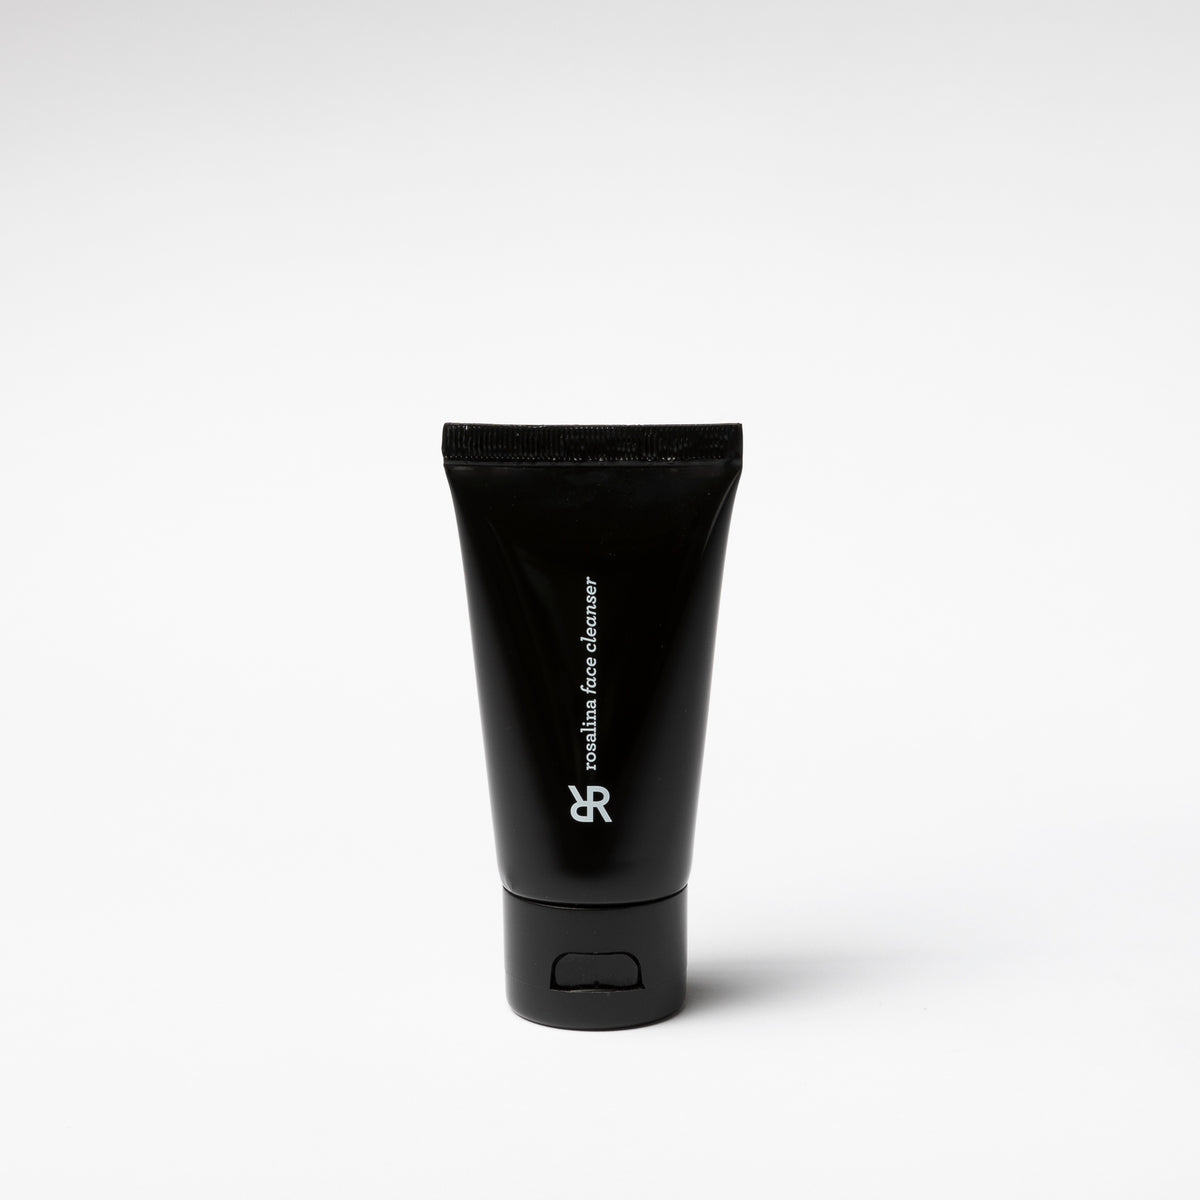 Rohr Remedy Rosalina Face Cleanser. 100% natural and organic skincare. Buy at Skinbase.com.au